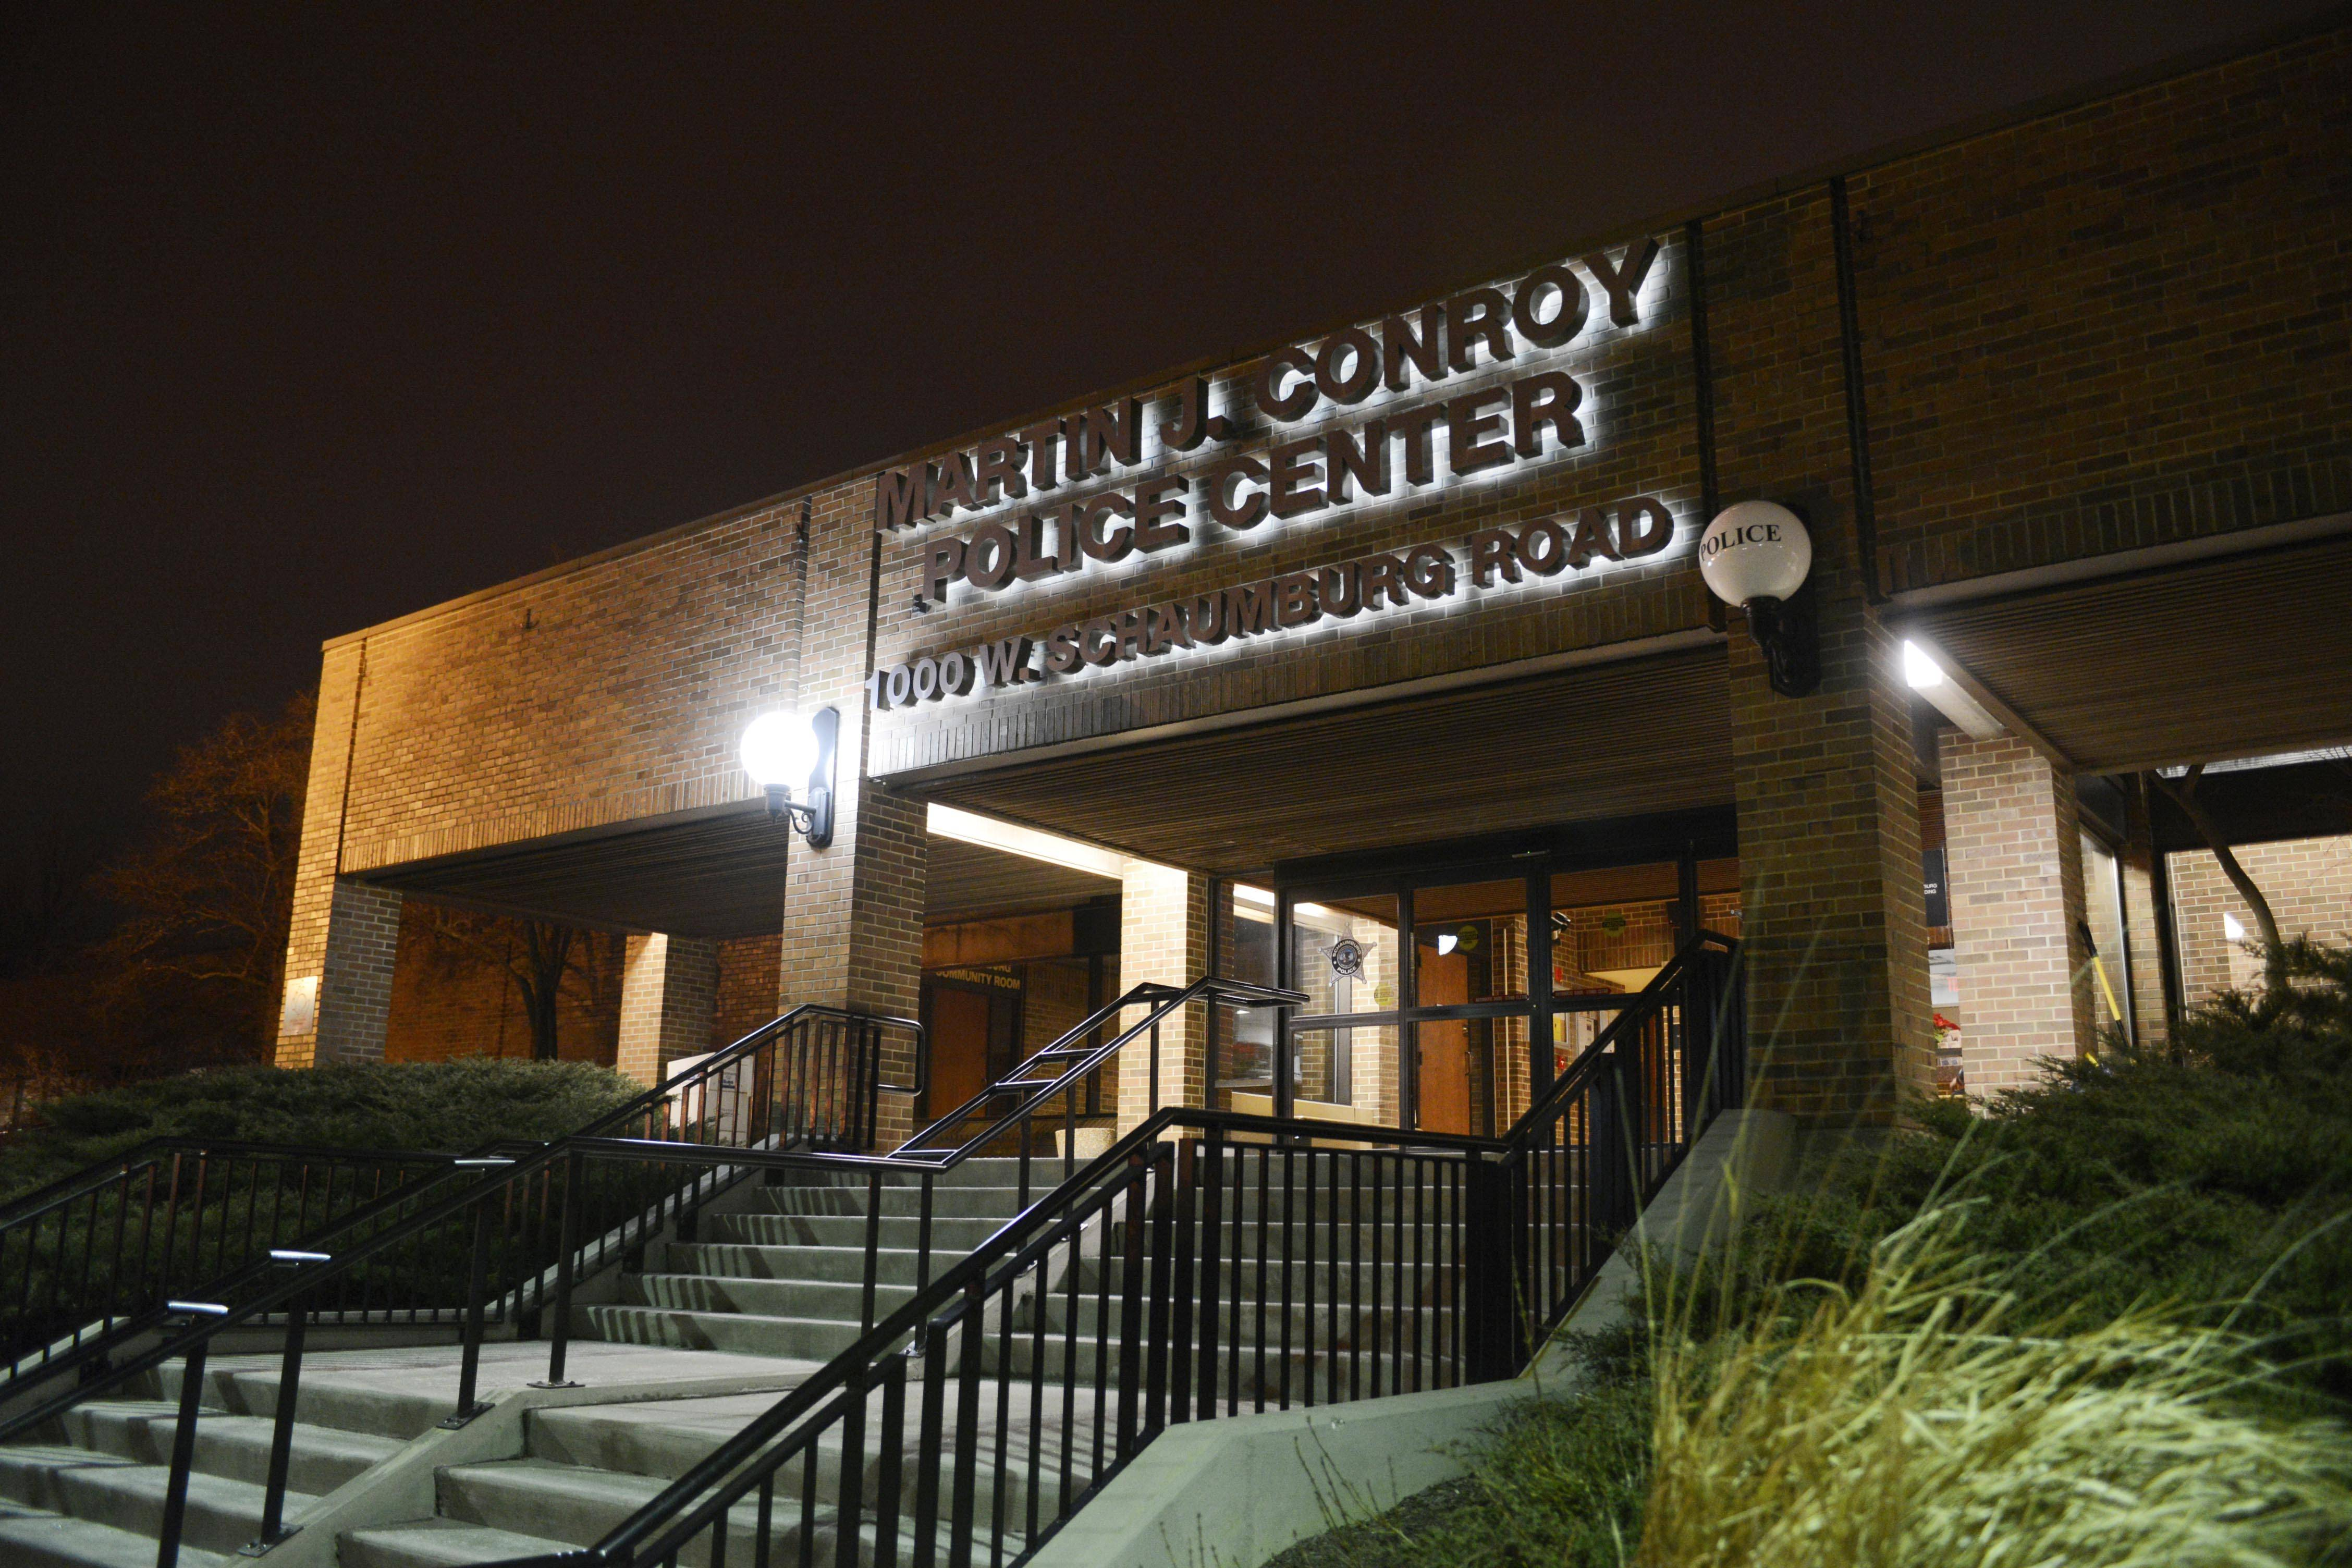 Schaumburg trustees have approved a new three-year contract with the village police department's lieutenants and sergeants. The contract promises 2 percent annual raises, but that figure could go up depending on how much the state cuts in revenues shared with municipalities.